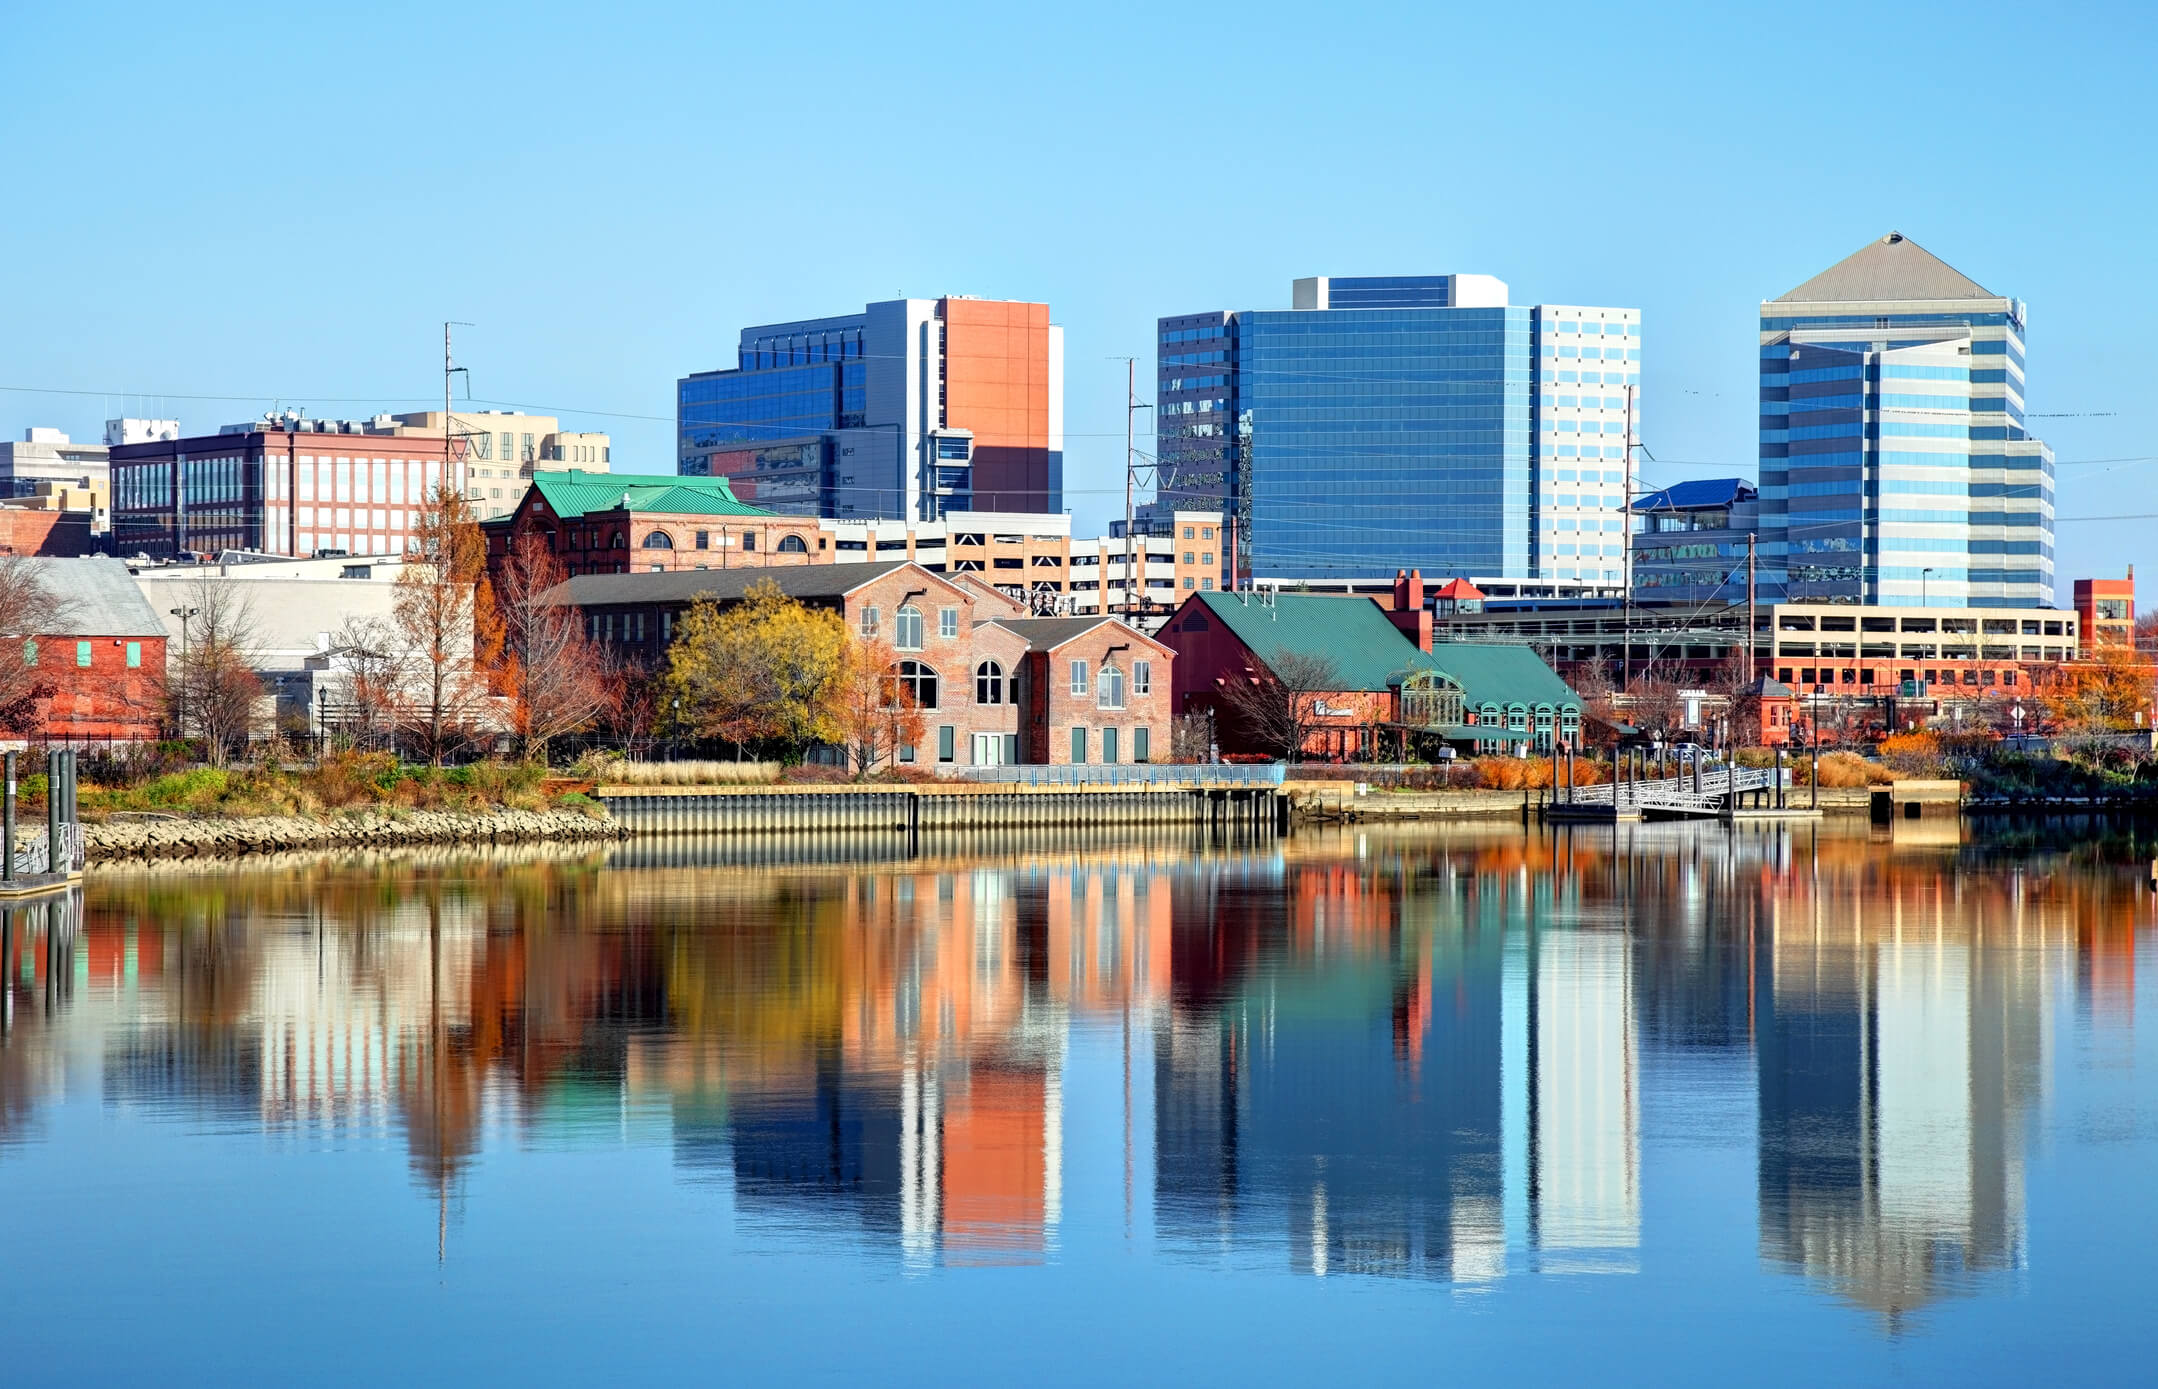 This is a photo of the wilmington delaware skyline overlooking a body of water